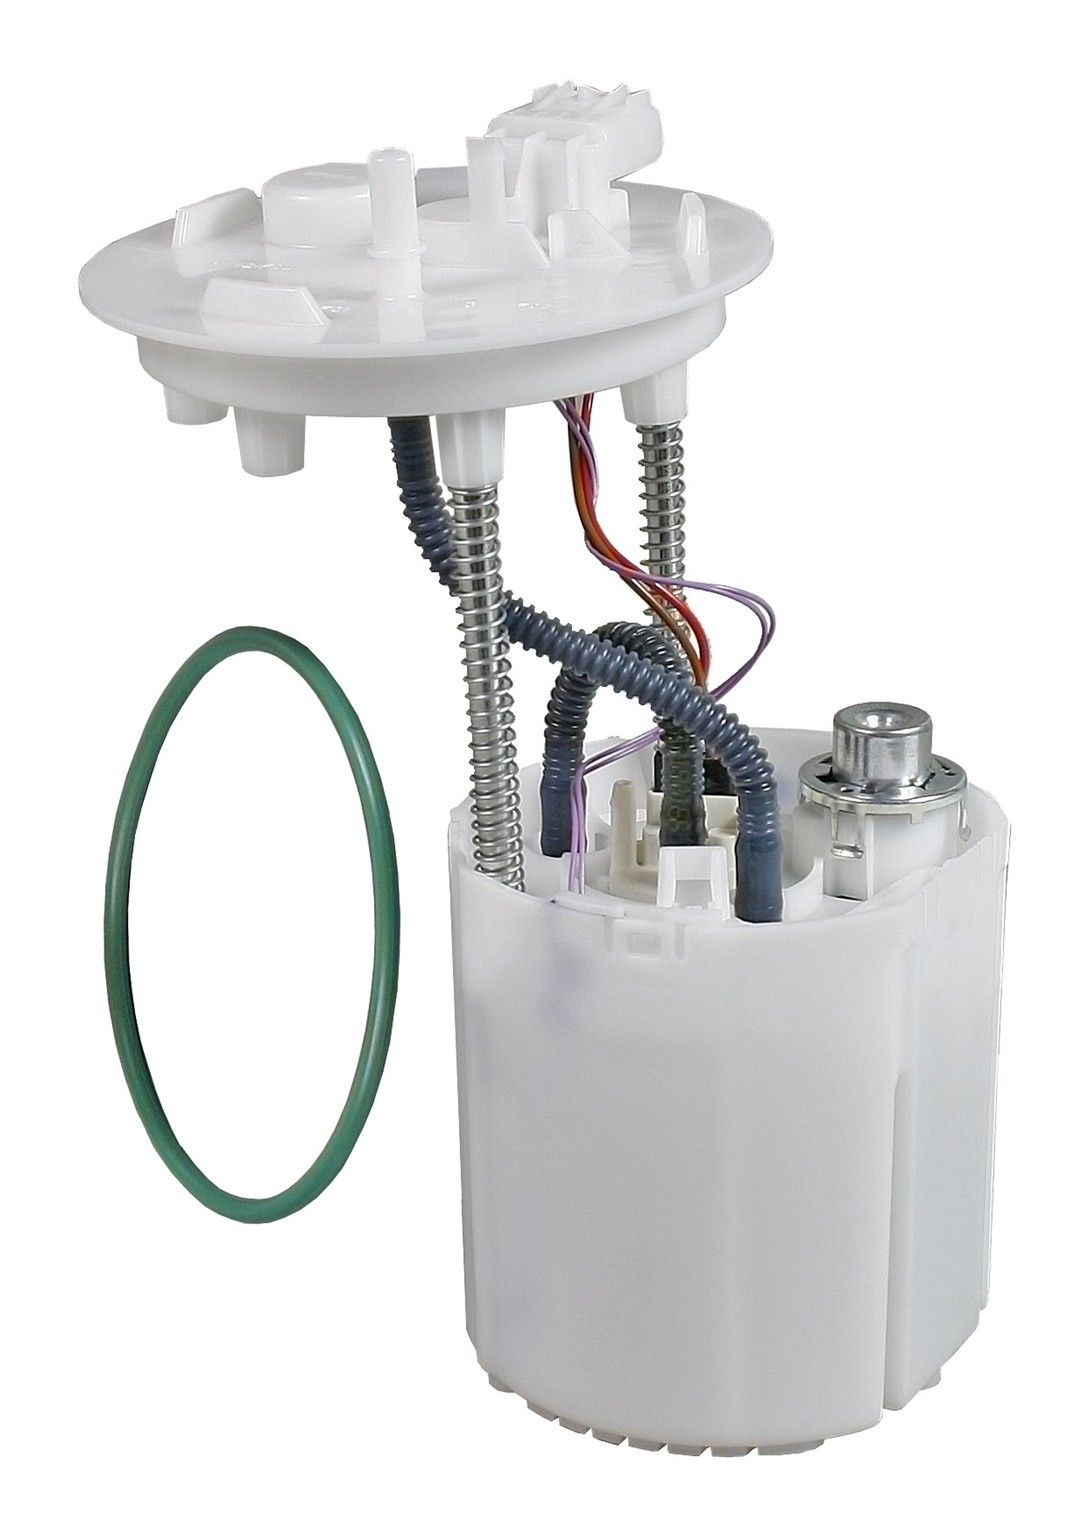 Chevrolet Cobalt Fuel Pump Module Assembly Replacement Acdelco Chevy Wiring Harness 2009 N A 4 Cyl 20l Airtex E3807m W O Level Sensor Includes Pressure Regulator